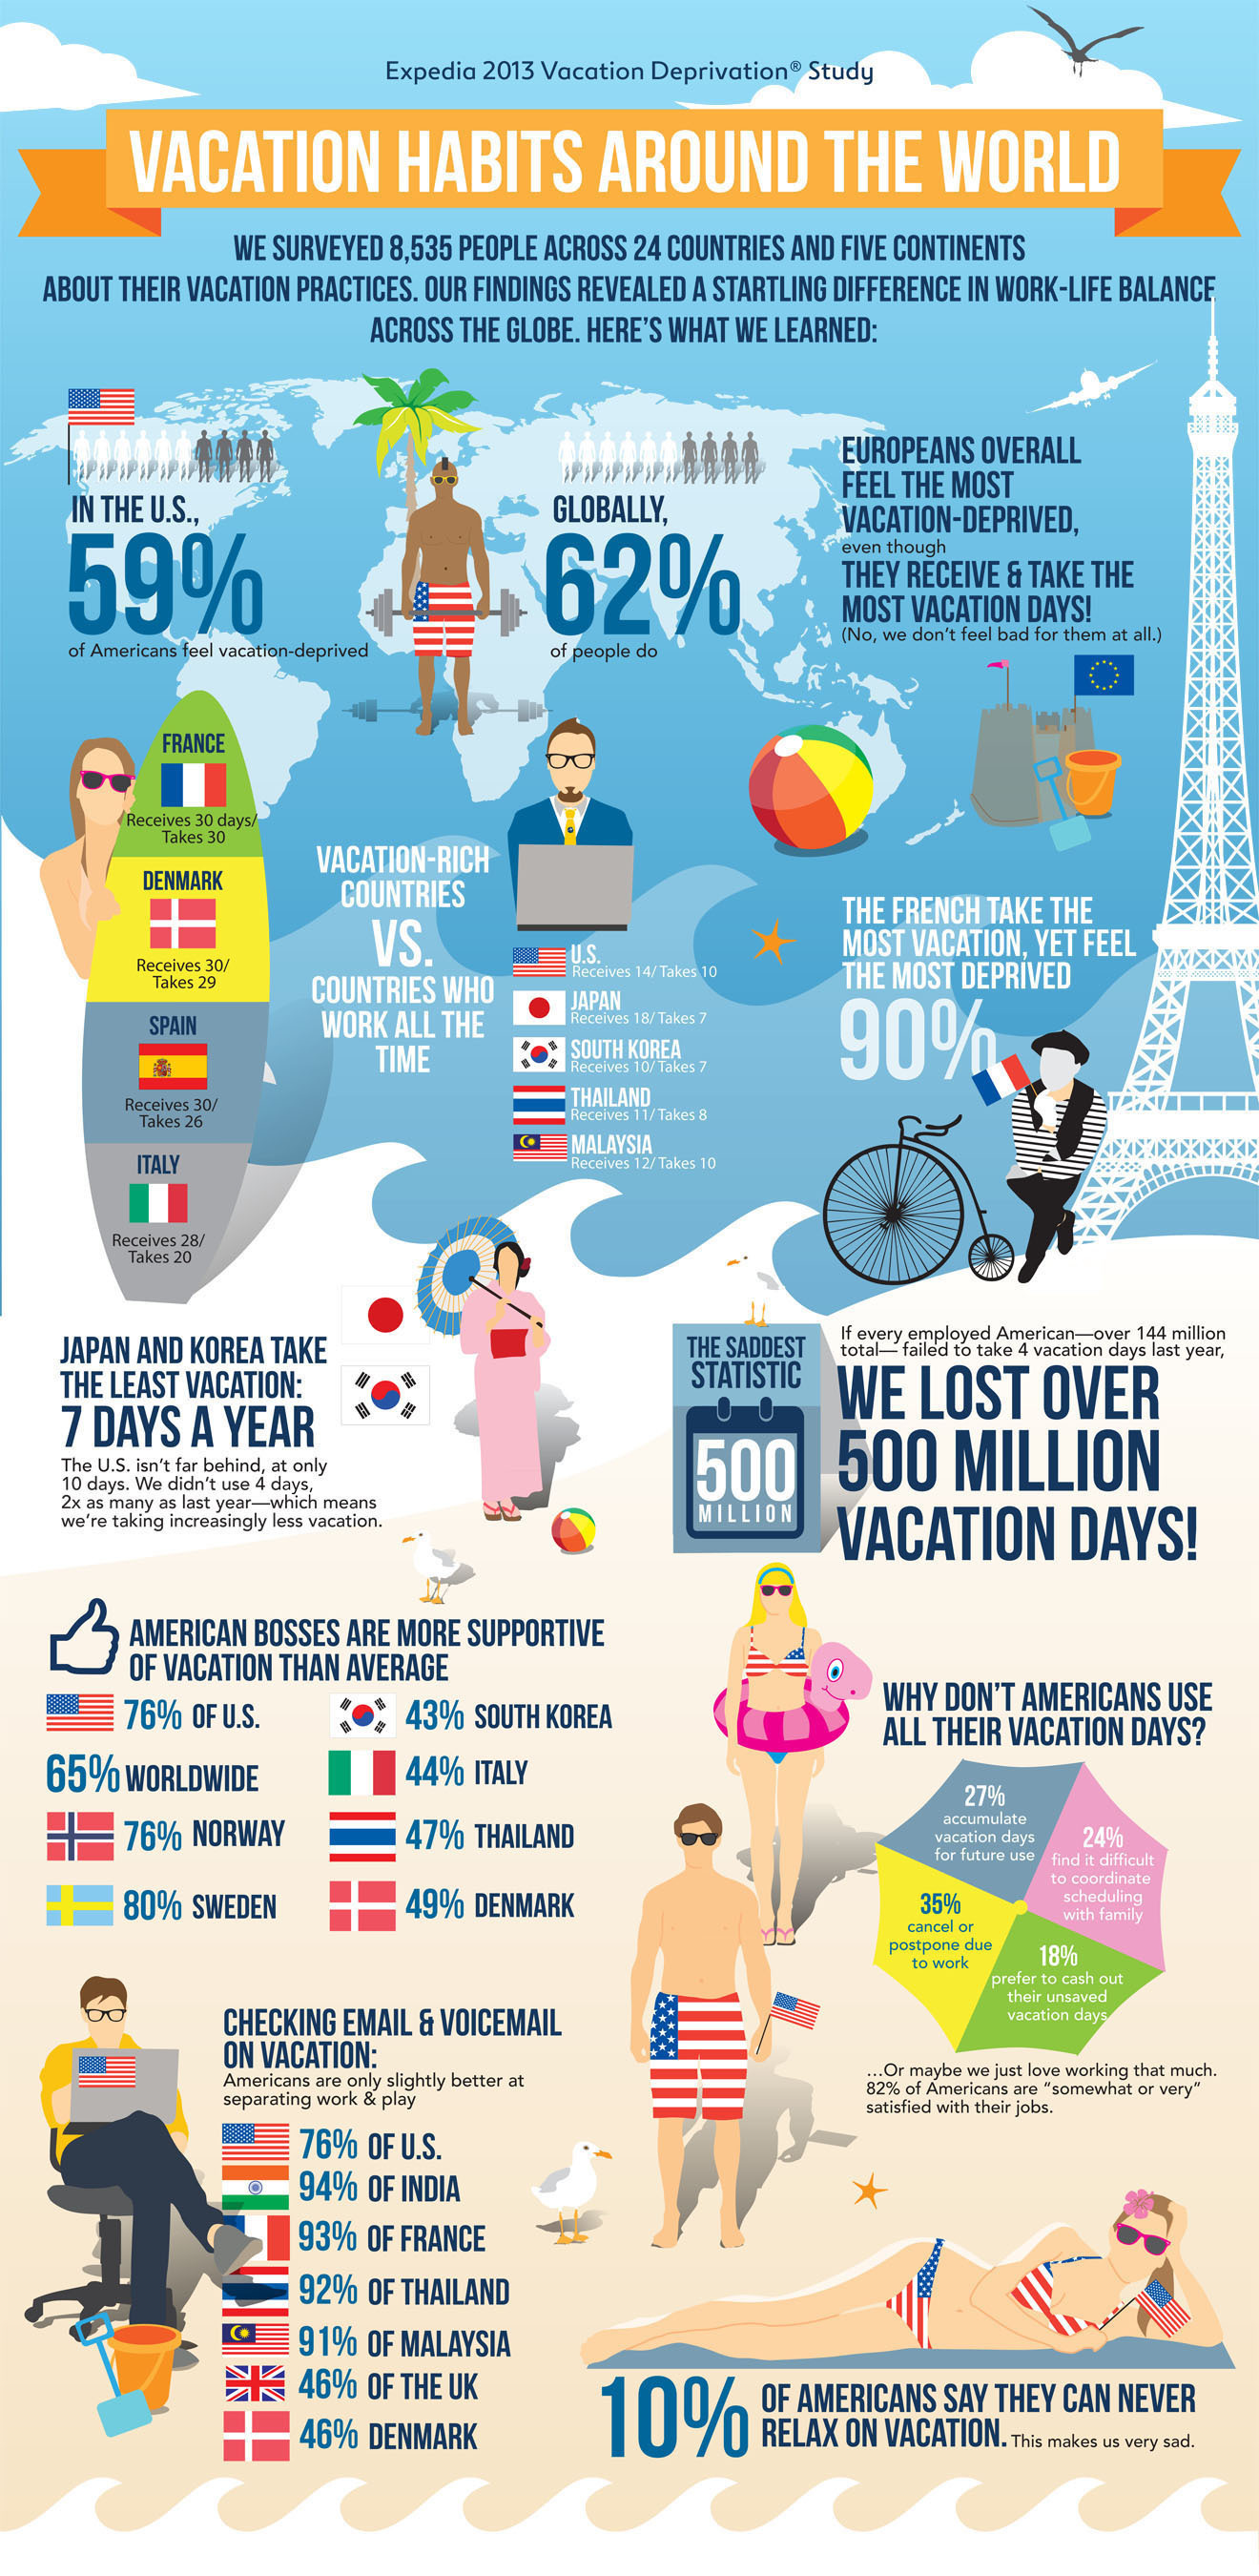 Expedia's 2013 Vacation Deprivation Study Reveals Stark Global Disparity in Work-Life Balance. ...